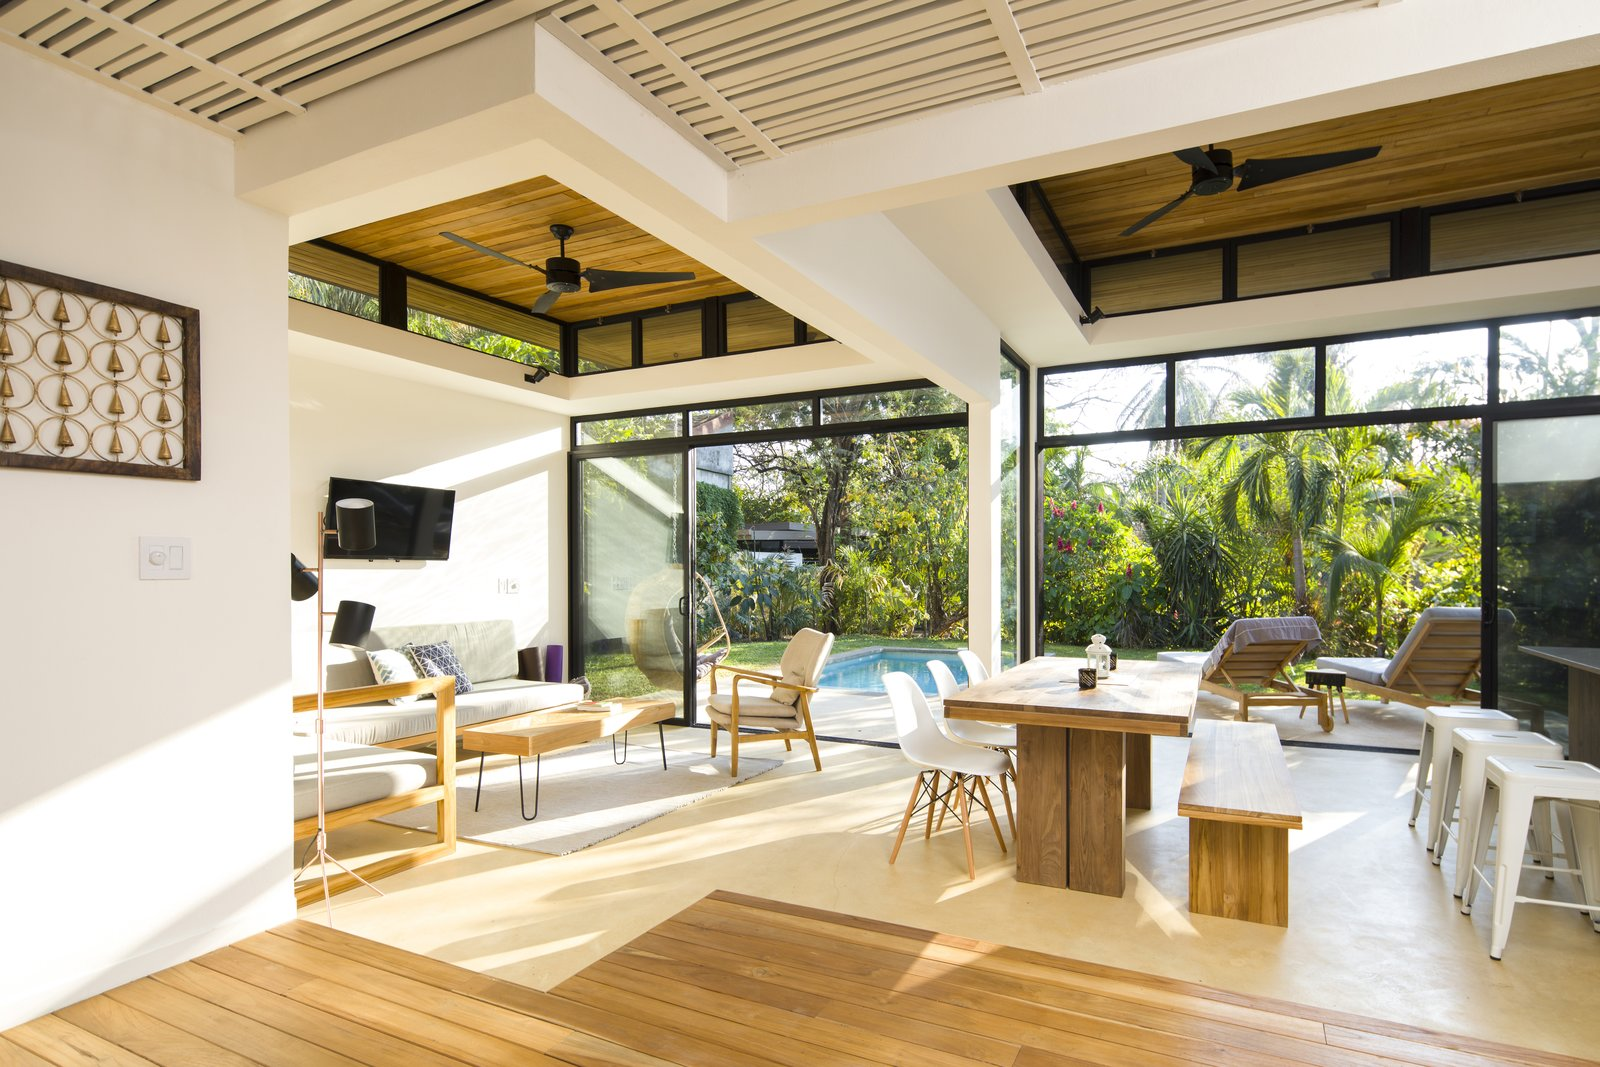 The wood tones in the ceiling are reflected in wood flooring and wood furniture introduced throughout the floor plan, adding warmth and texture. Decompress at This Boutique Hotel and Yoga Retreat in the Costa Rican Jungle - Photo 6 of 11